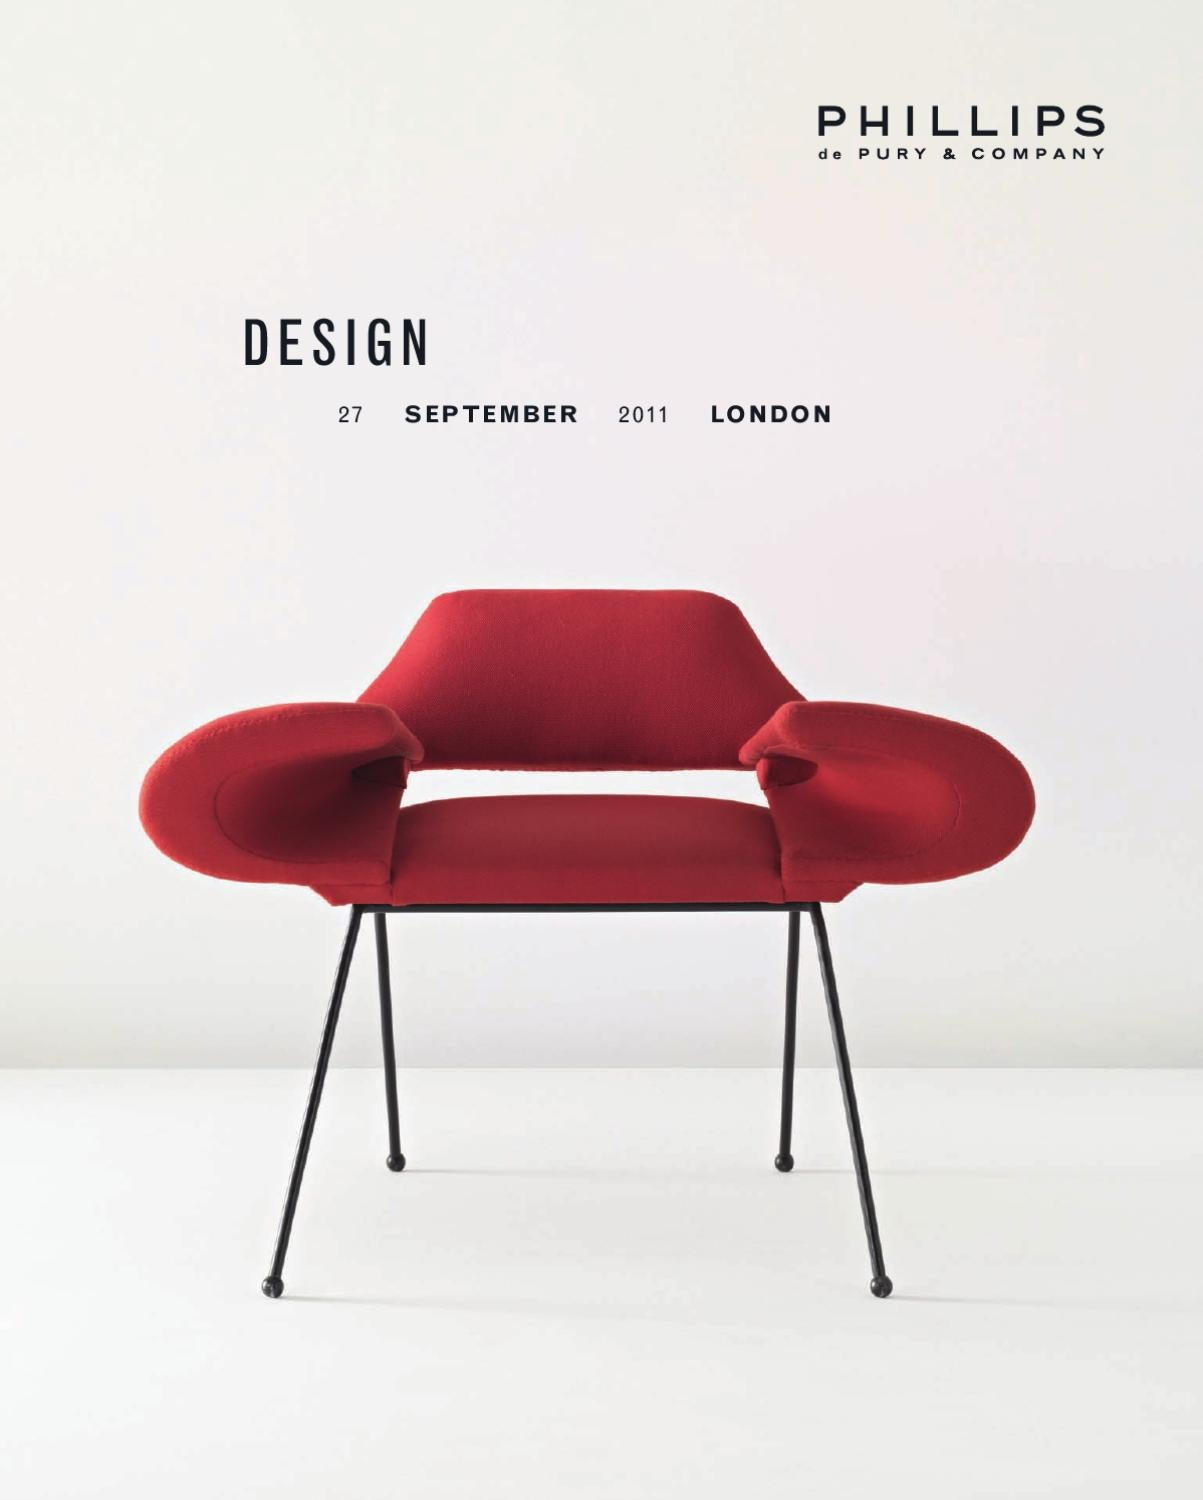 Design By Phillips De Pury Co Issuu